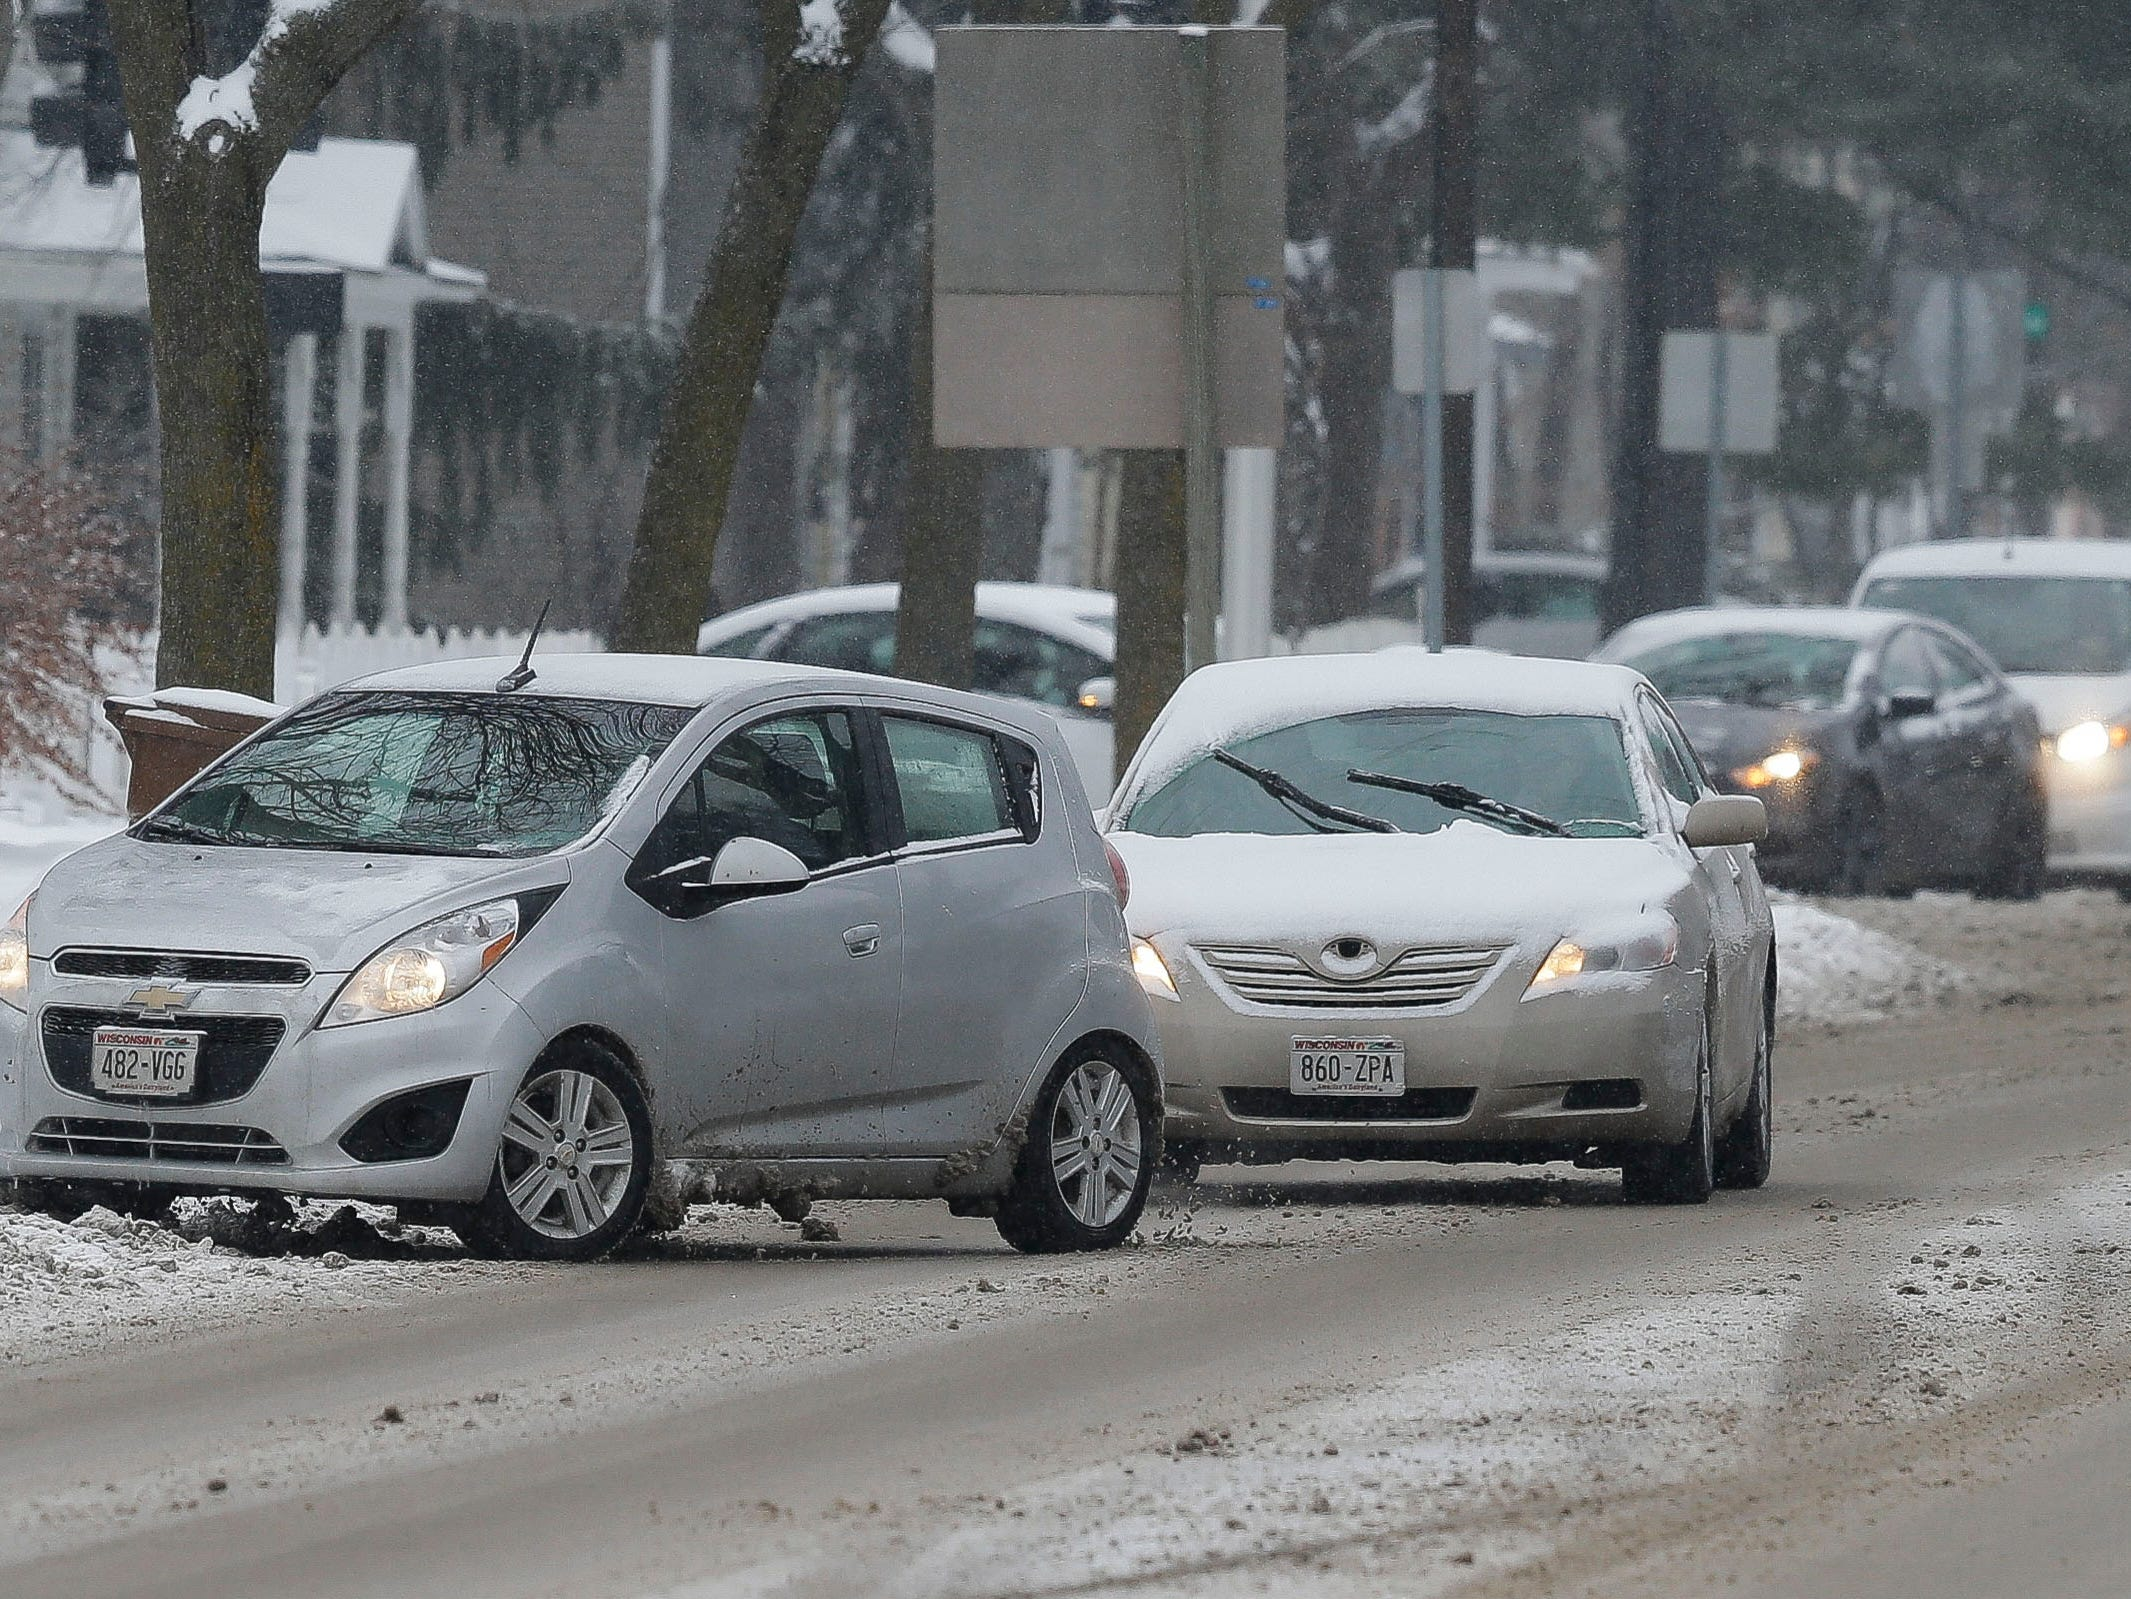 Cars drive along Main Street on Tuesday, January 22, 2019, in Stevens Point, Wis. A snow storm rolled through the area on Tuesday and is expected to drop 6-8 inches of snow.Tork Mason/USA TODAY NETWORK-Wisconsin